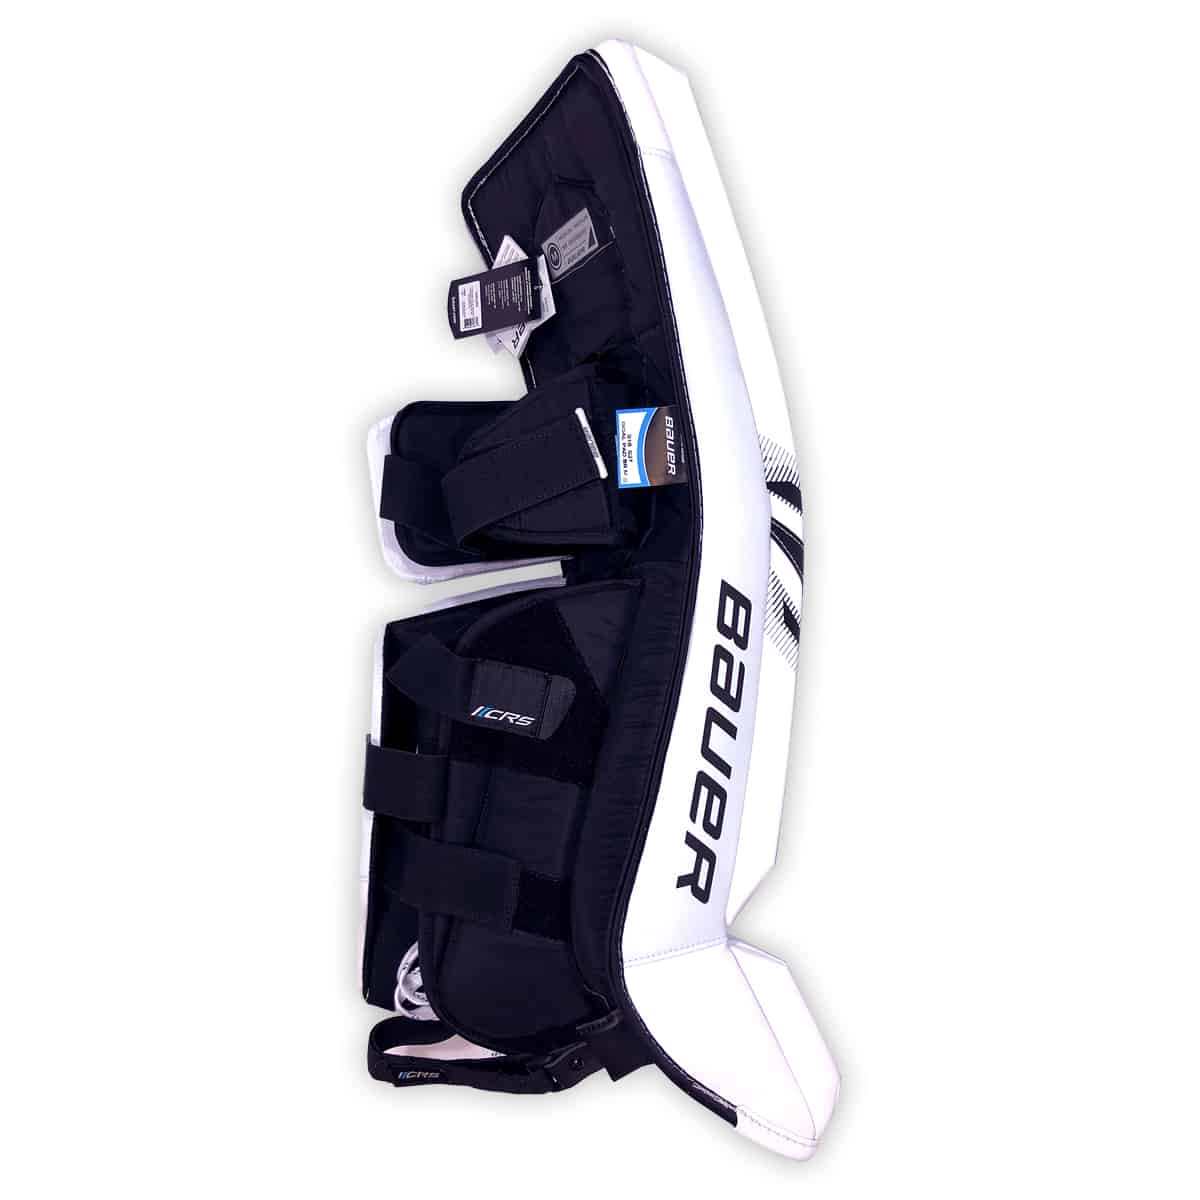 601a93f1404 Bauer Supreme S27 Senior Goalie Leg Pads in Black and White on Back